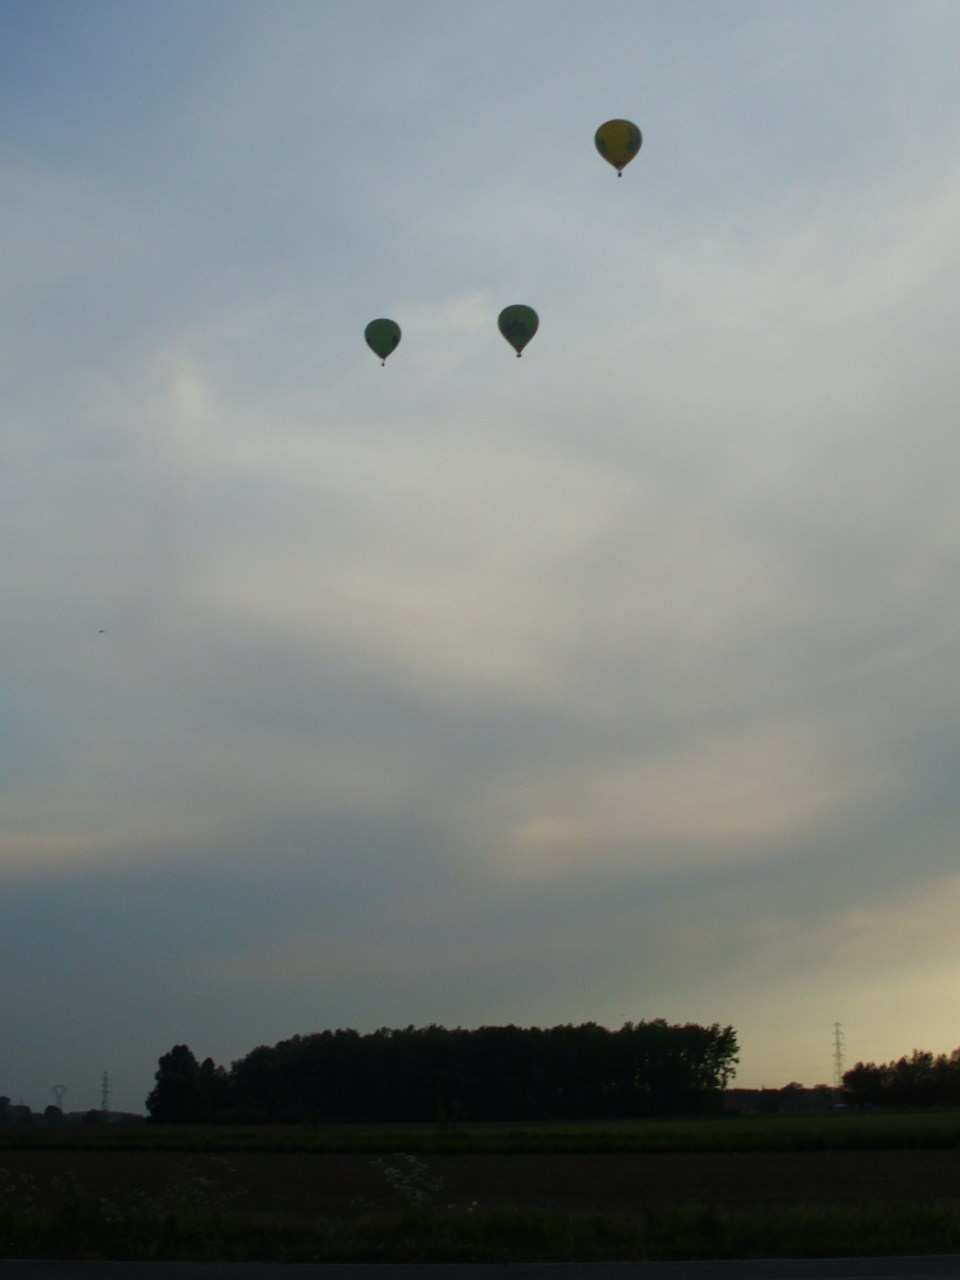 I love when the sky is littered with hot air balloons. Right when the sun is setting.